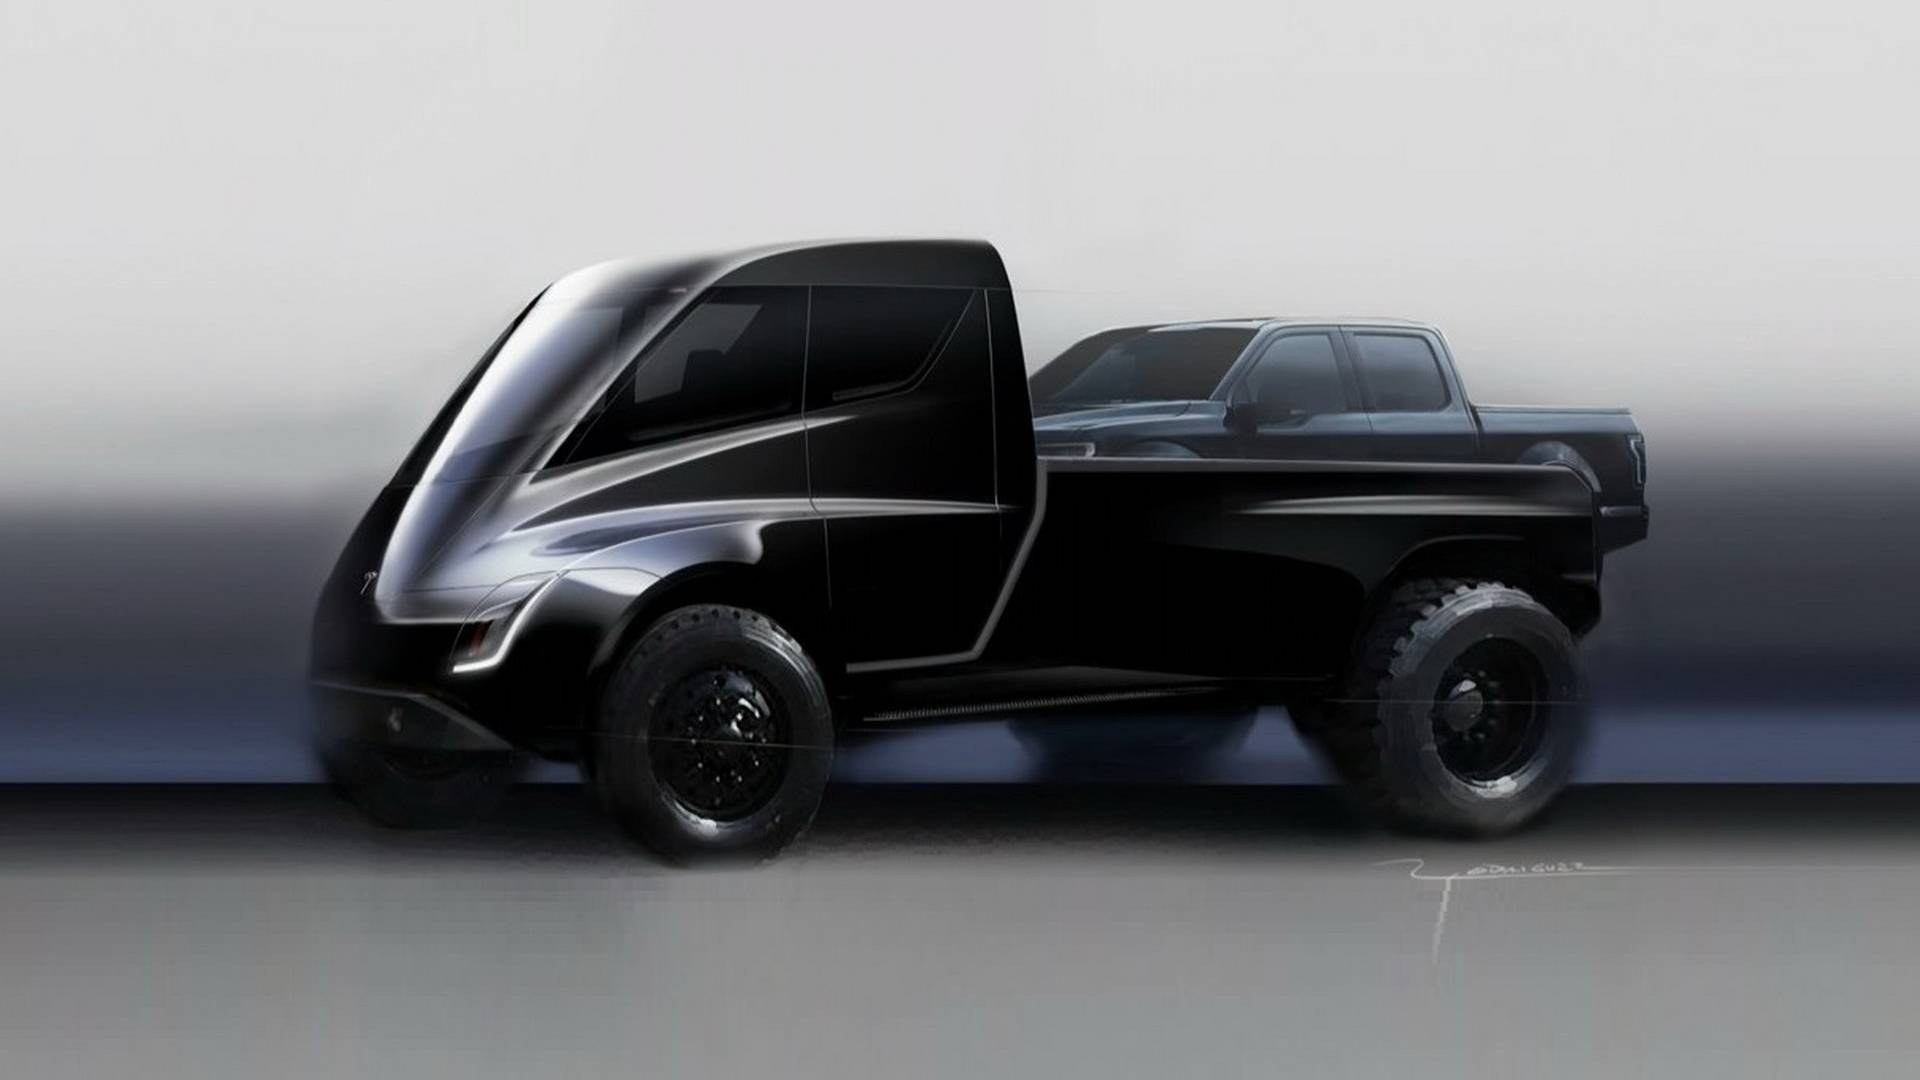 Ysis Tesla Pickup Truck Battery Size Range 0 60 Mph Time